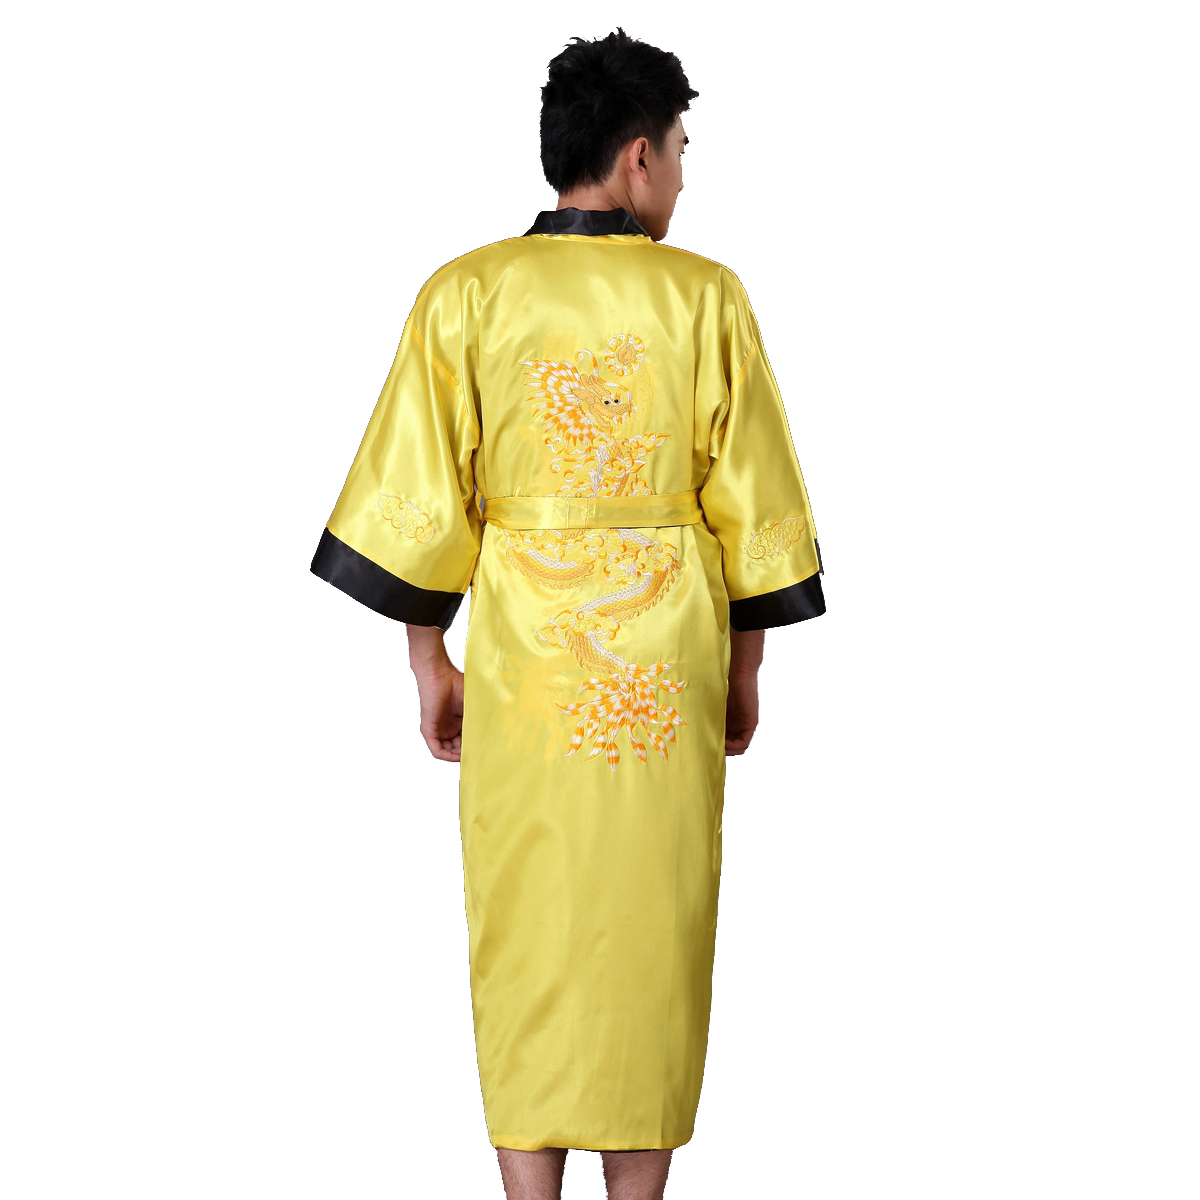 Reversible Black Yellow Chinese Men's Satin Robe Gown Tradition Embroider Dragon Sleepwear Kimono Bathrobe  S M L XL XXL XXXL